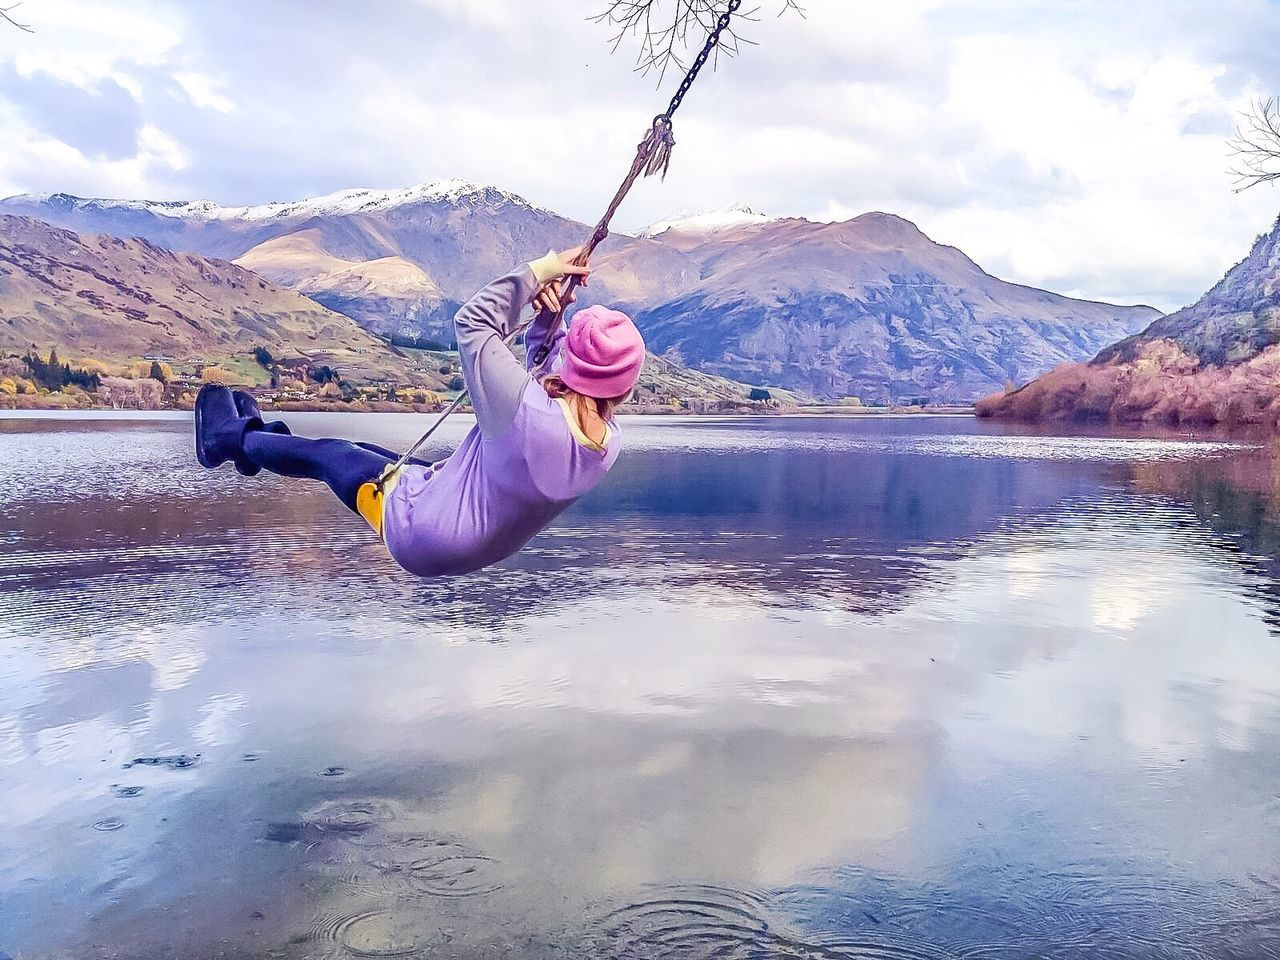 real people, water, one person, mountain, sky, nature, beauty in nature, outdoors, lifestyles, cloud - sky, day, scenics, lake, young adult